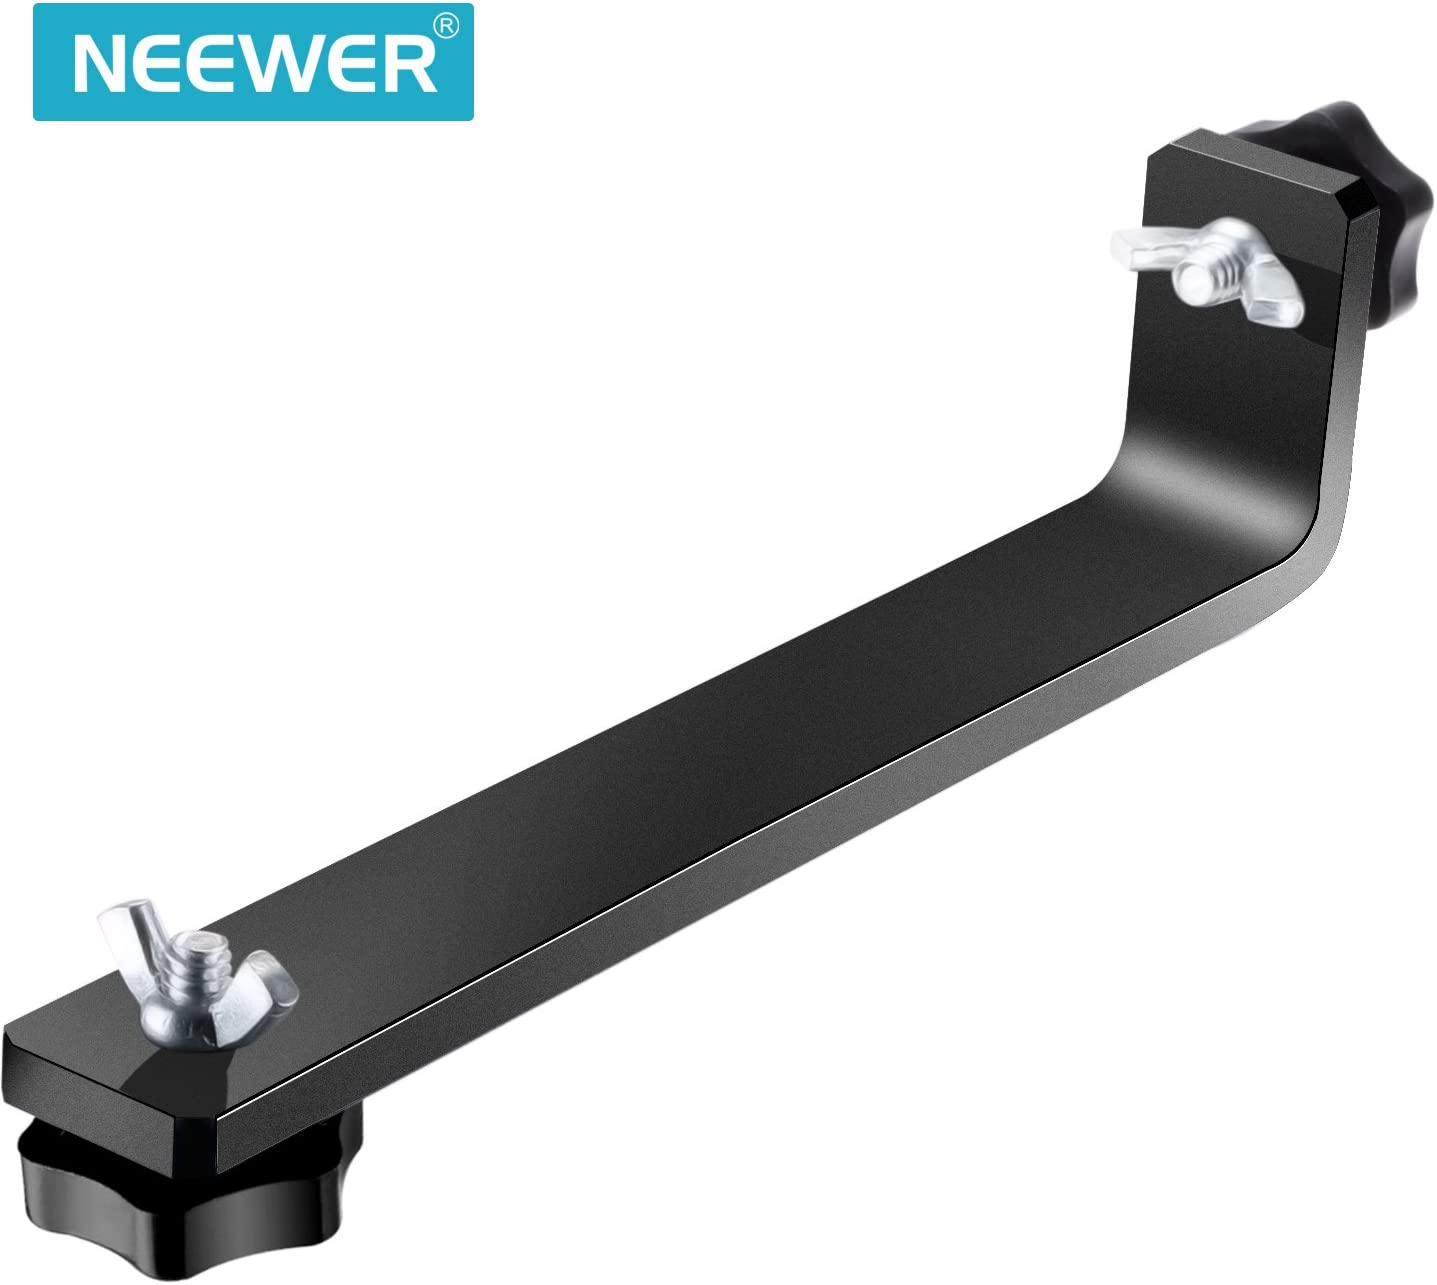 Neewer Mounting L-Bracket of Camera Crane for LCD LED Monitor with 1//4-inch Screw Hole